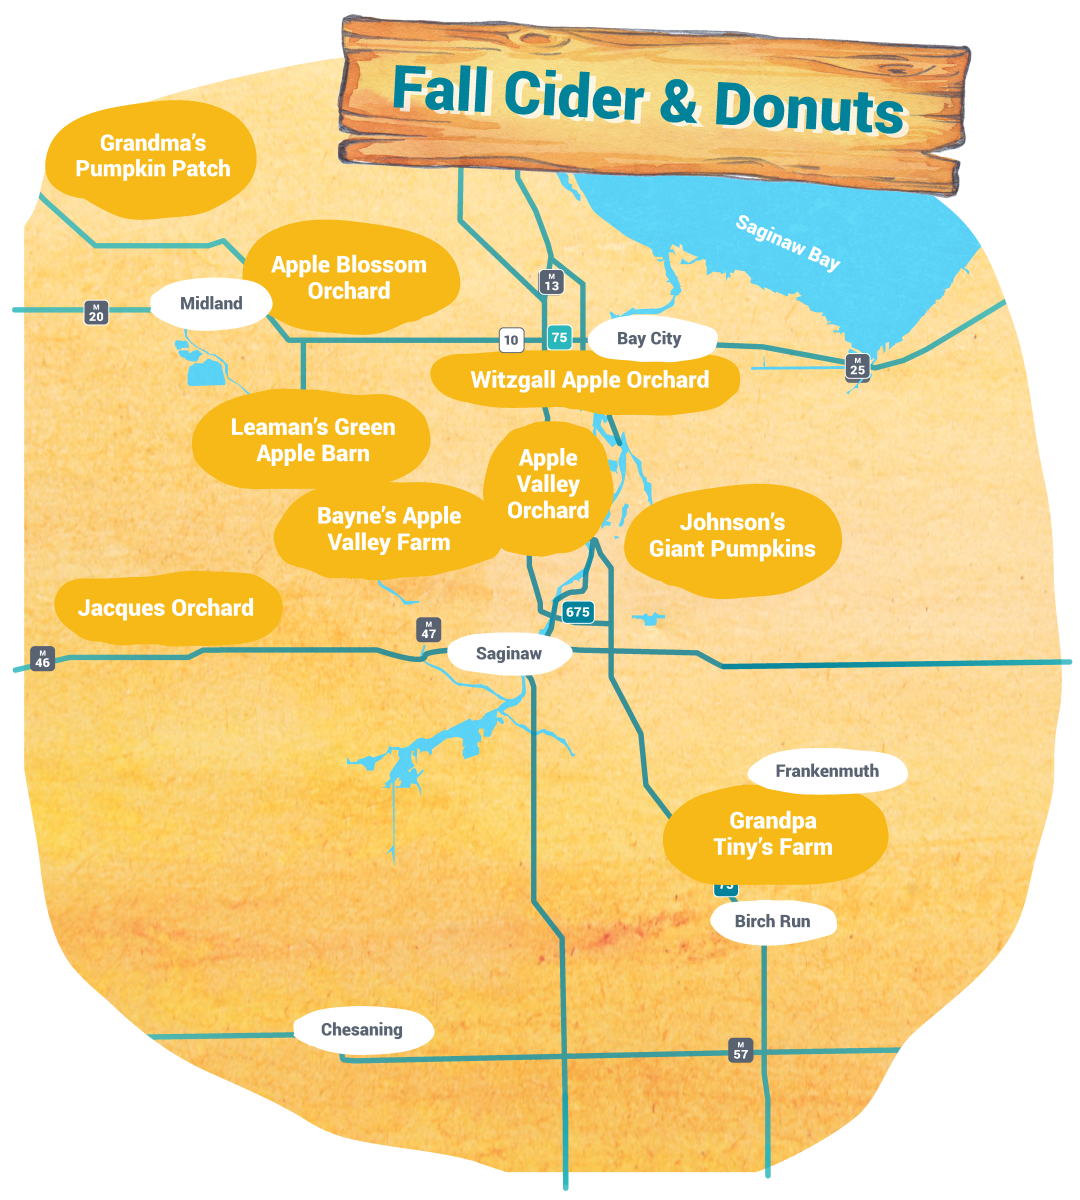 Self-Guided Tours - Fall Cider and Donuts Map